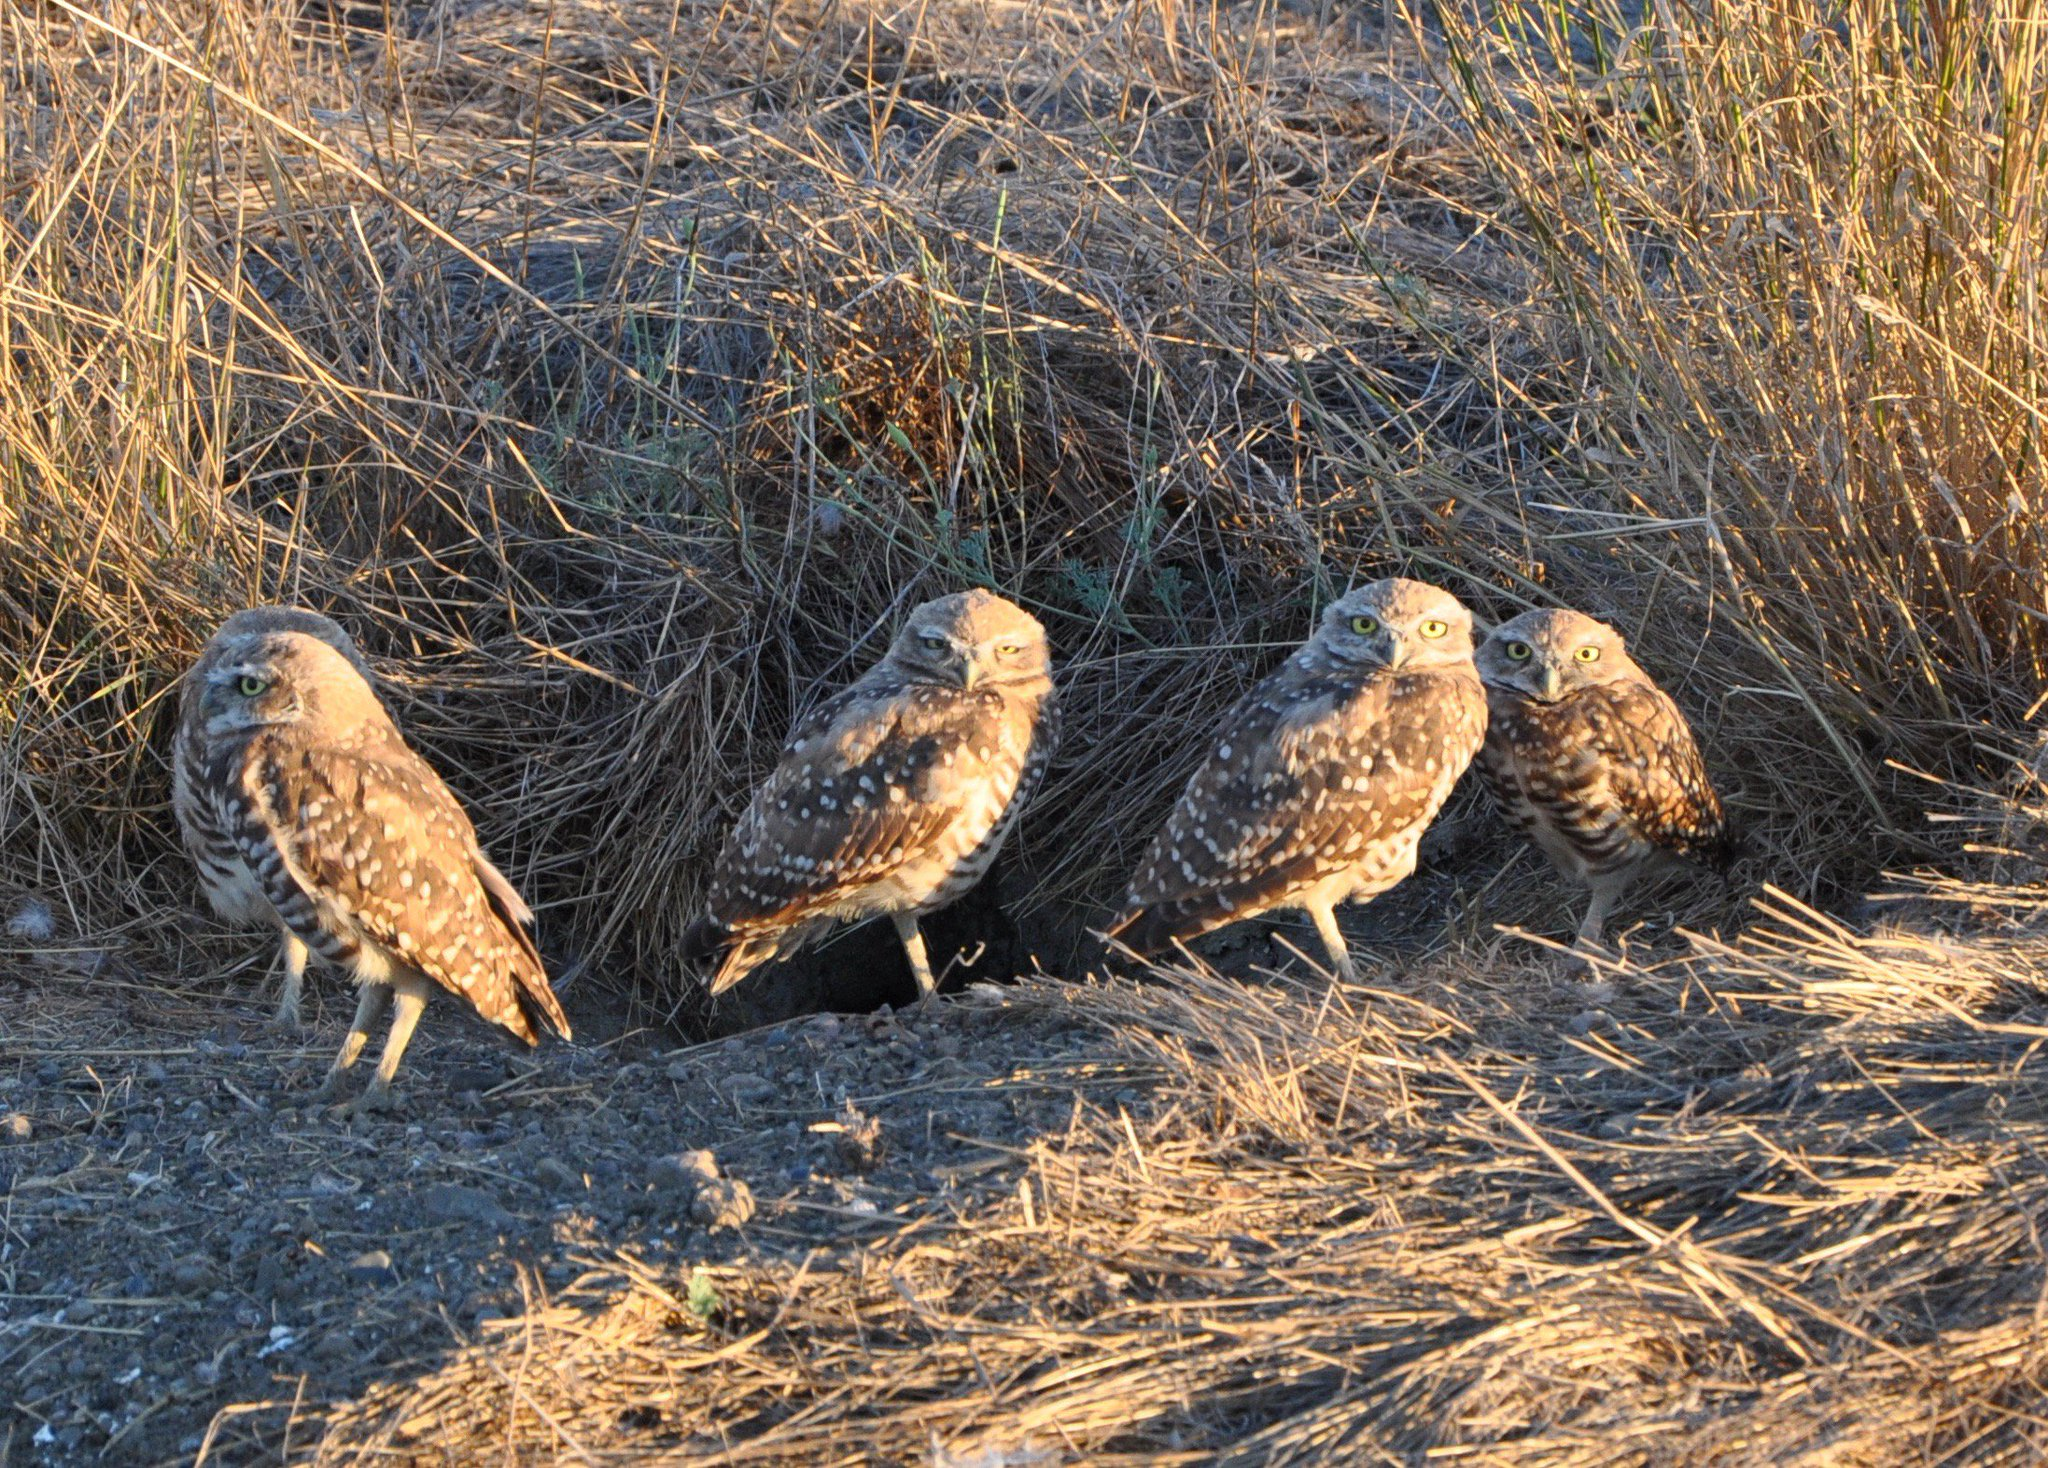 Today is #Superbowl vs #Superb_Owl challenge; posting some of my #Superb_Owls - here is #15 - burrowing owl clan in #DavisCA https://t.co/iaemzlEuLw